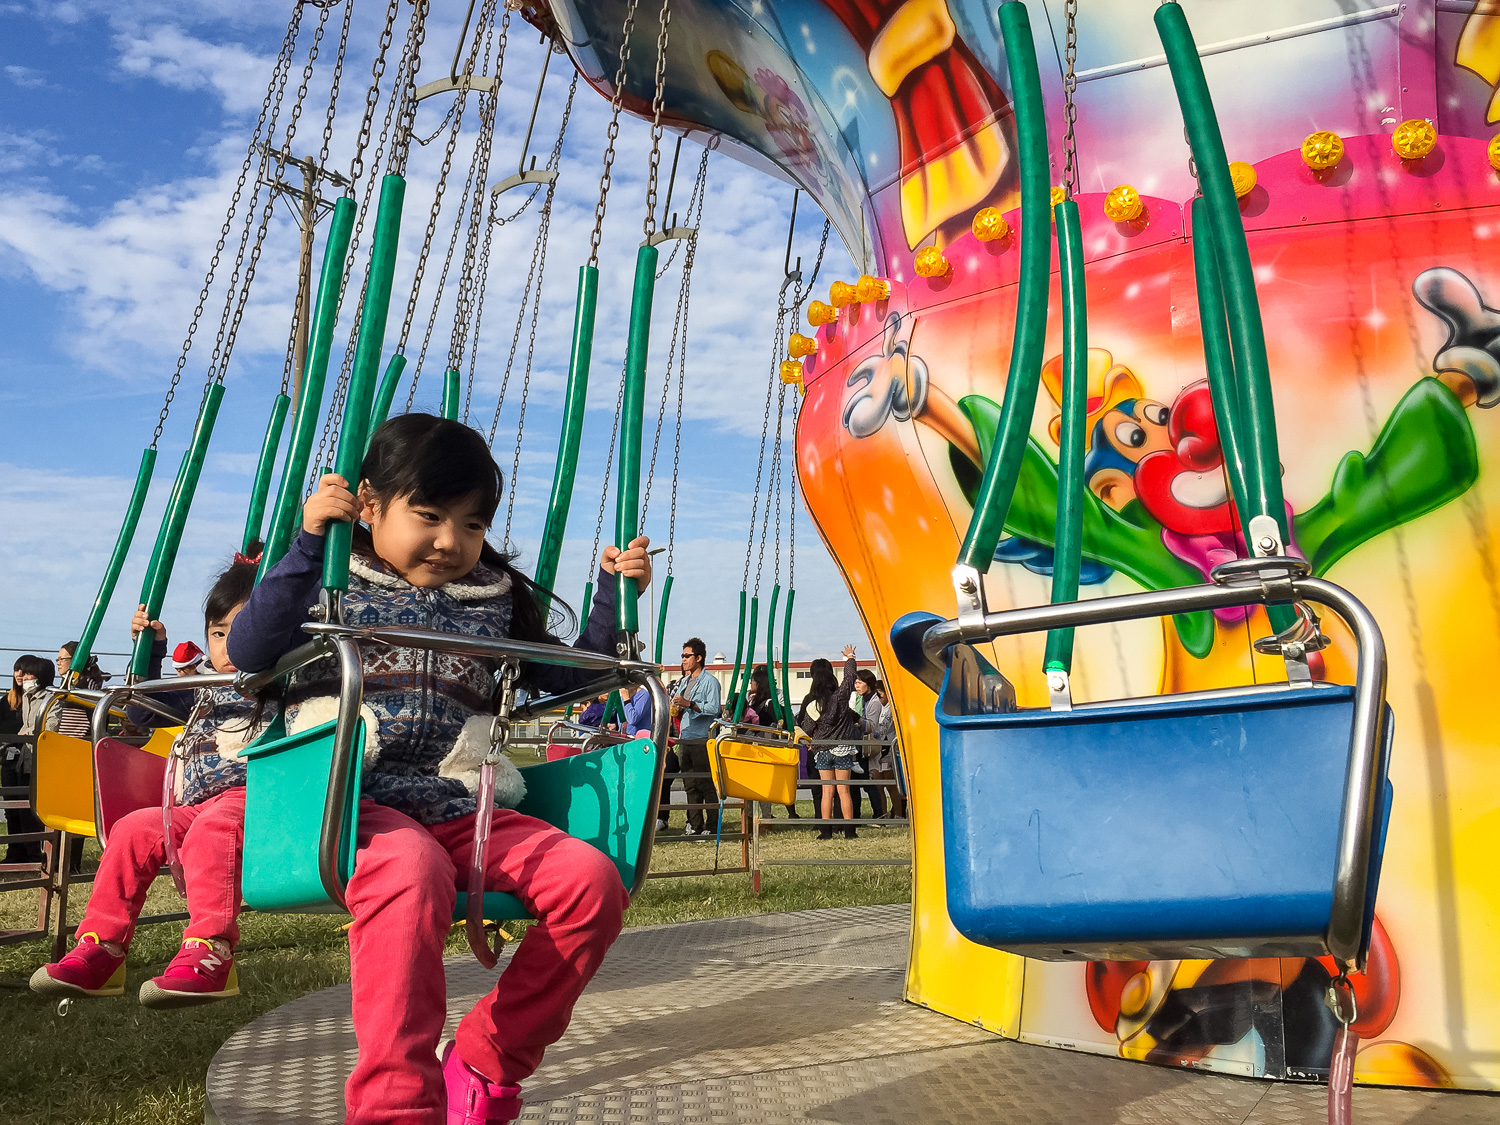 A little girl on a ride at a festival in Okinawa, Japan. Apple iPhone 6 Plus, ISO 32, f2.2, 1/1700 sec.